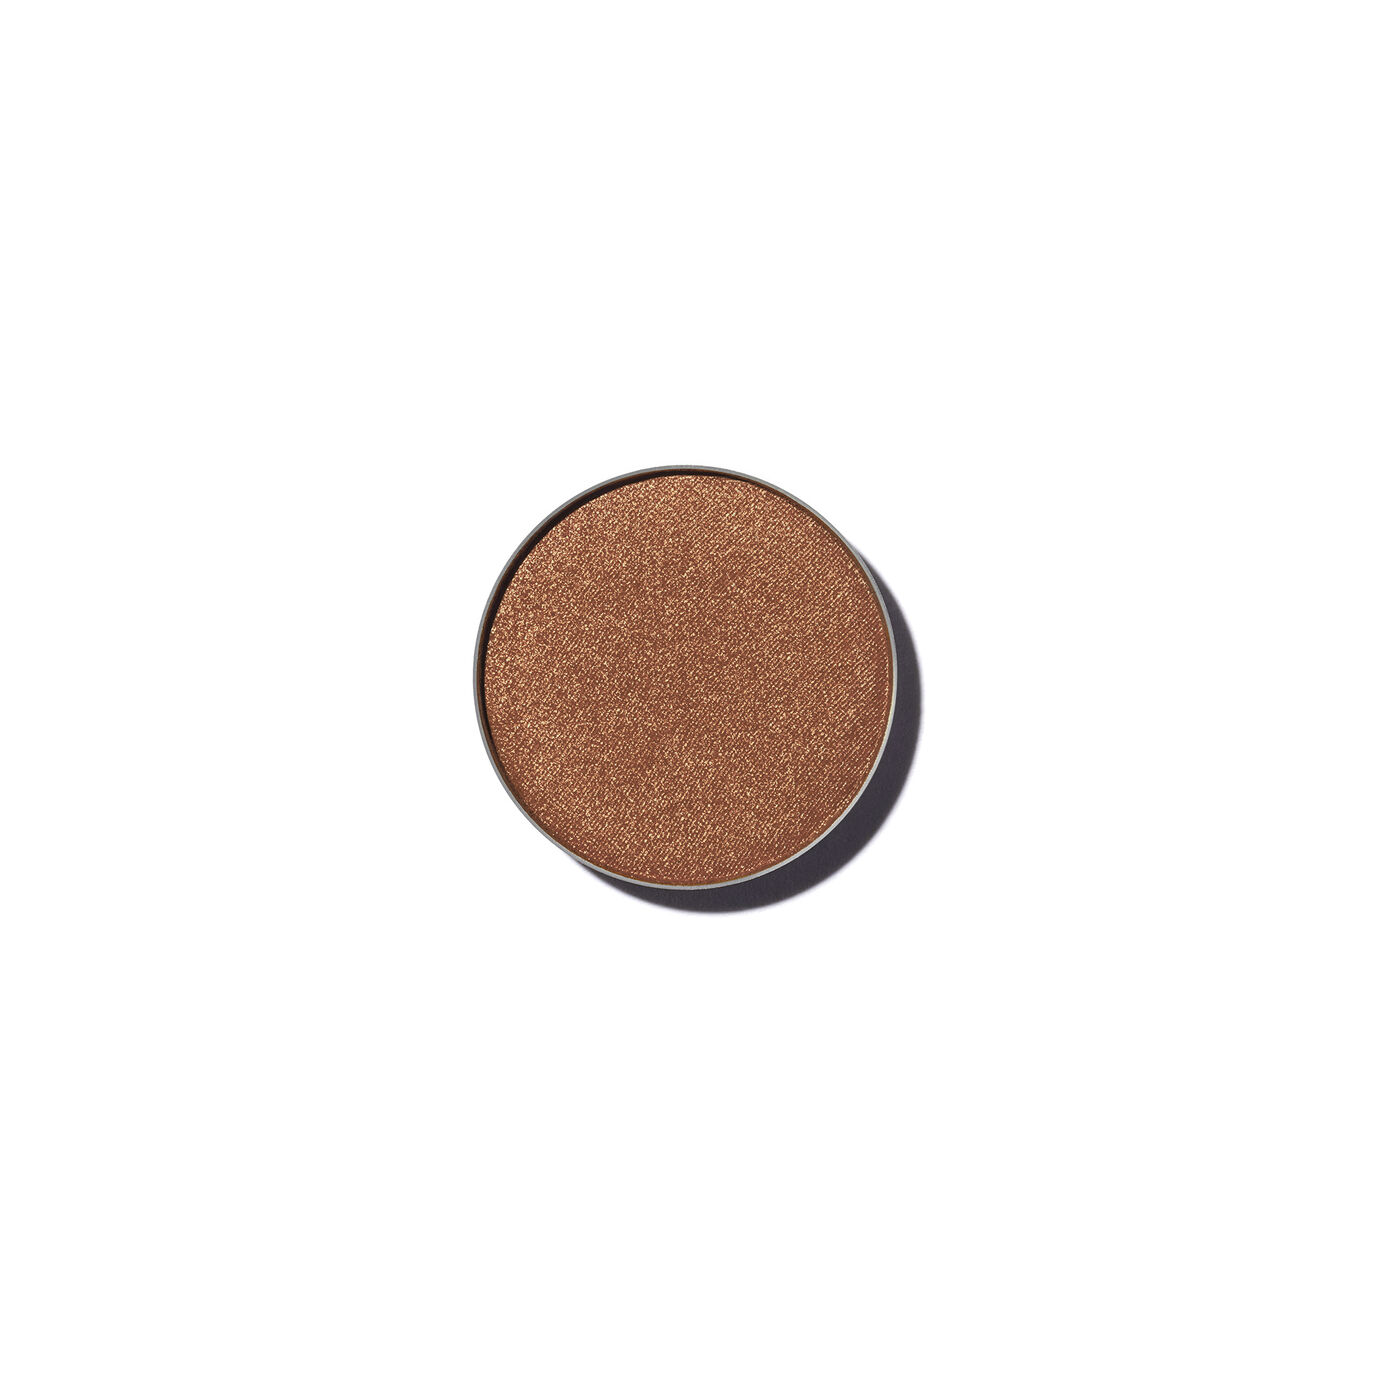 Eyeshadow Singles - Golden Copper